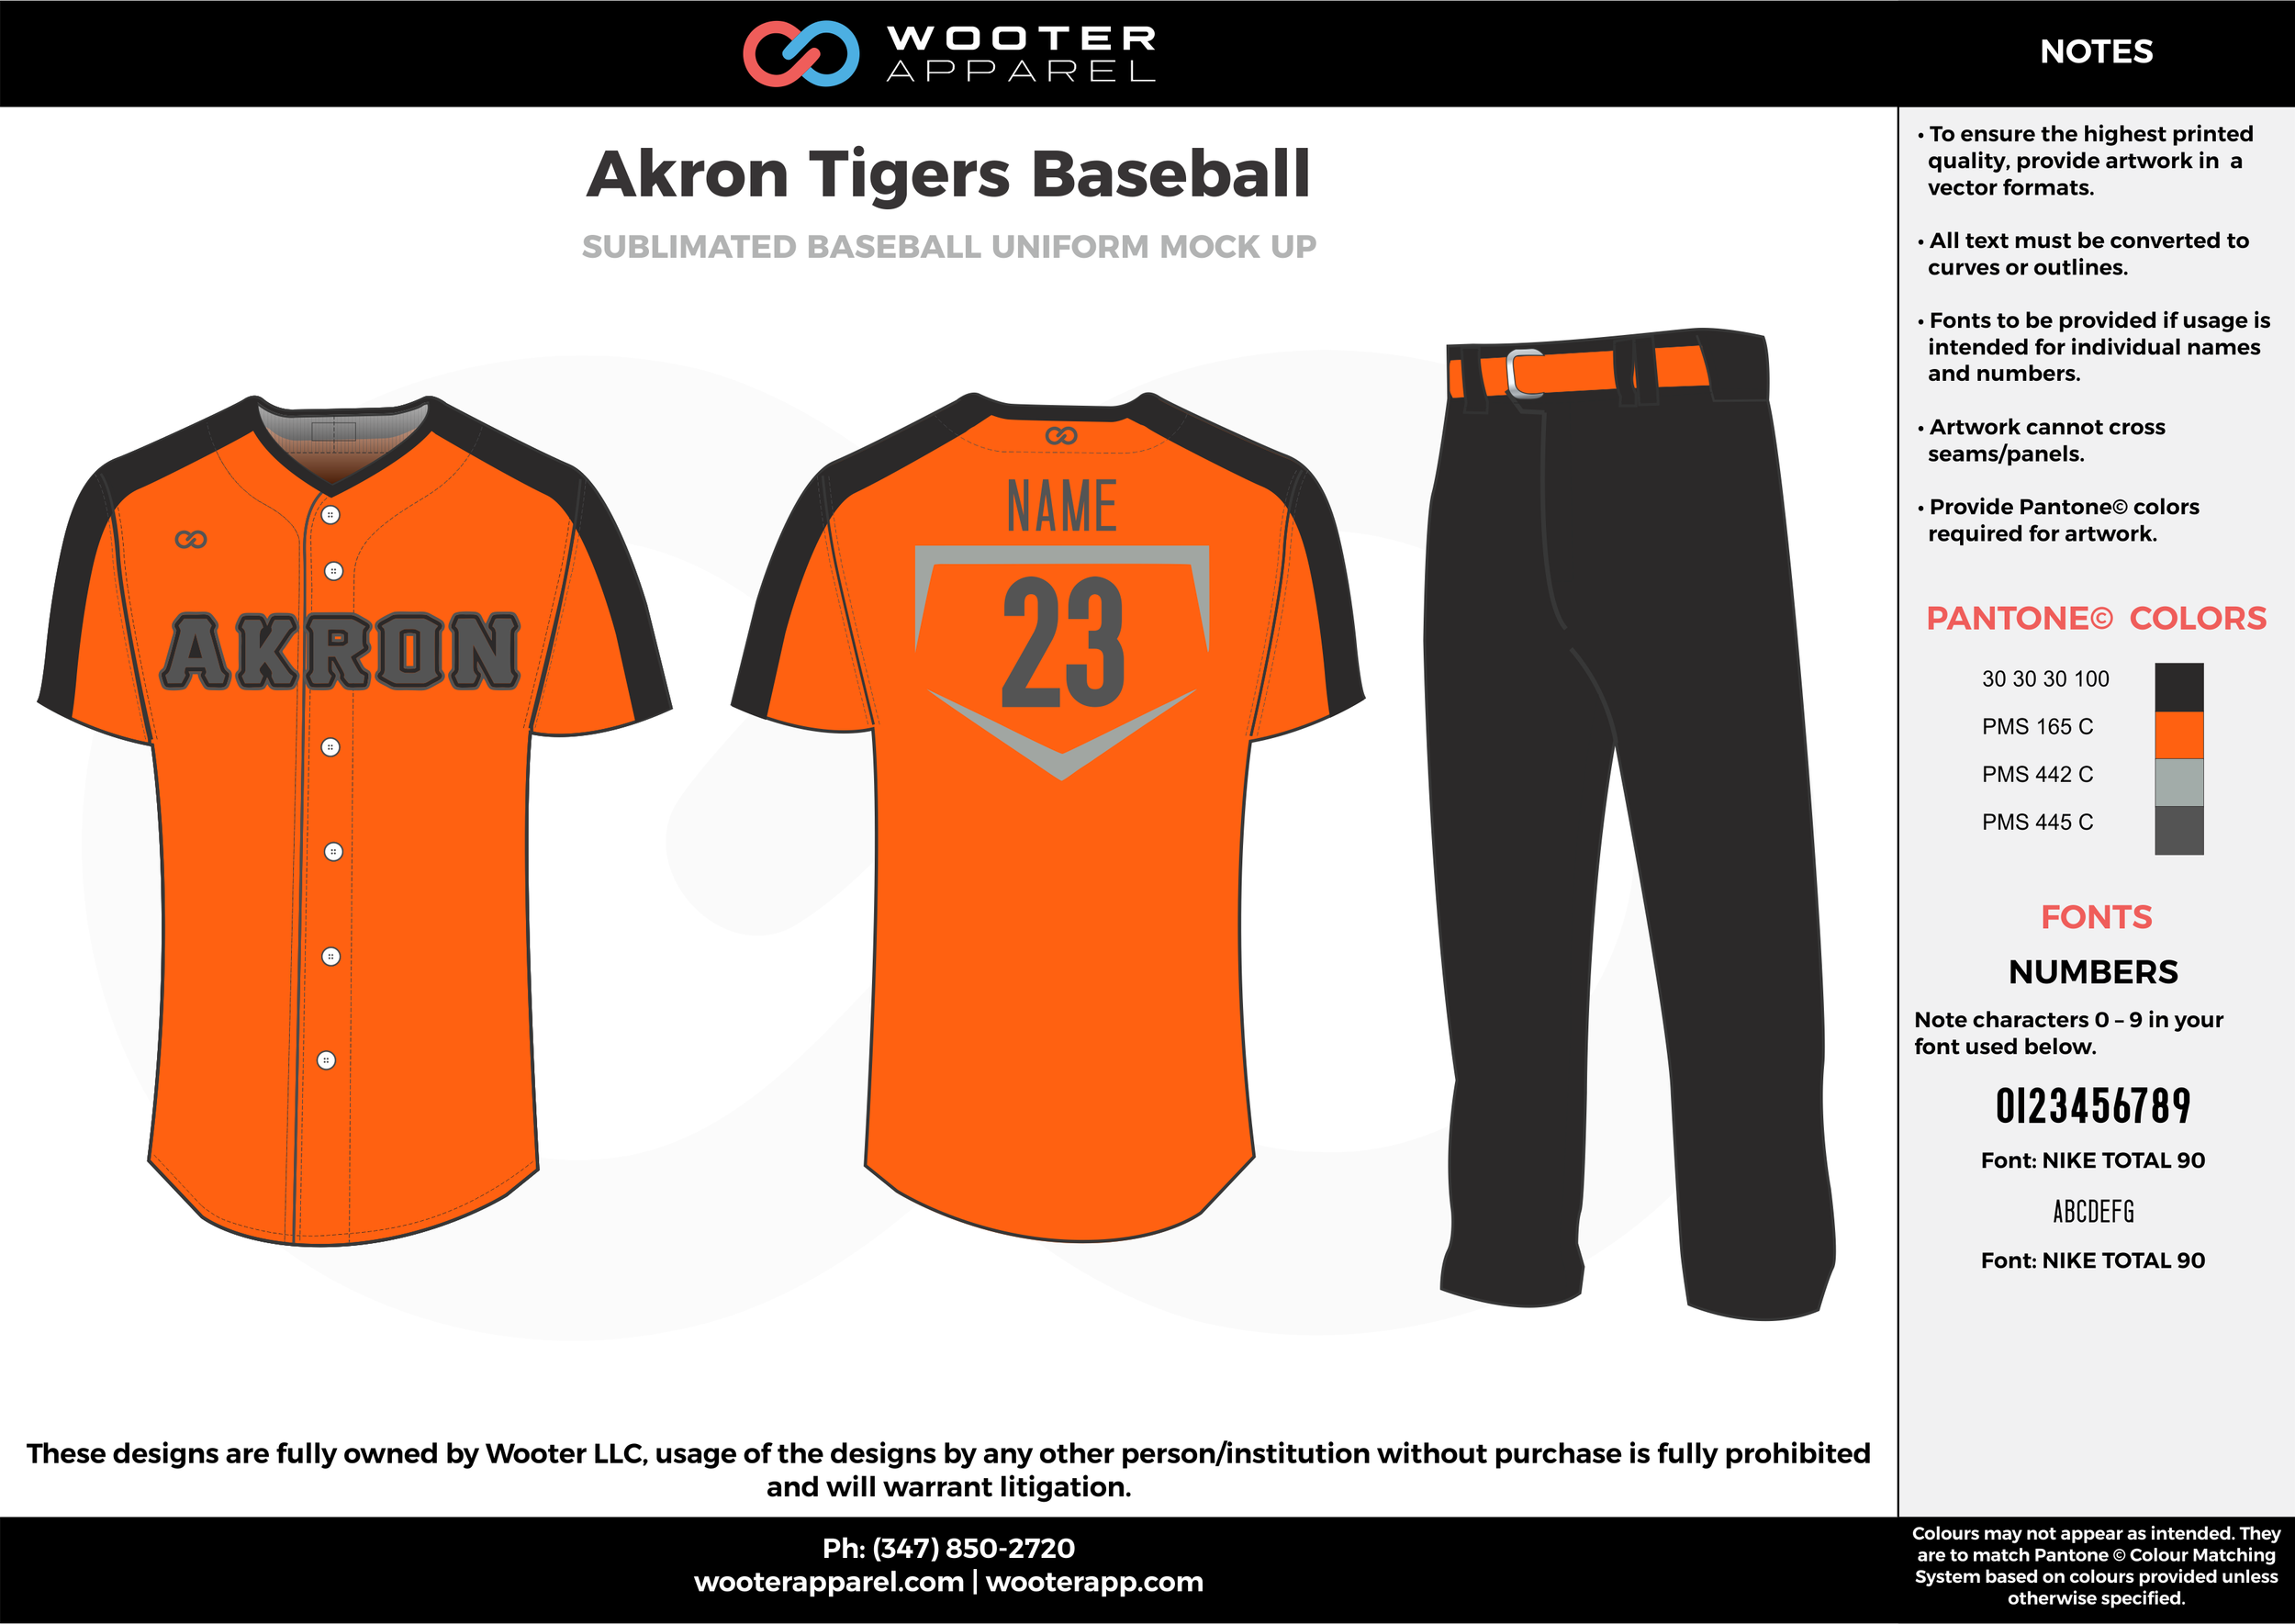 AKRON TIGERS BASEBALL orange black gray baseball uniforms jerseys pants